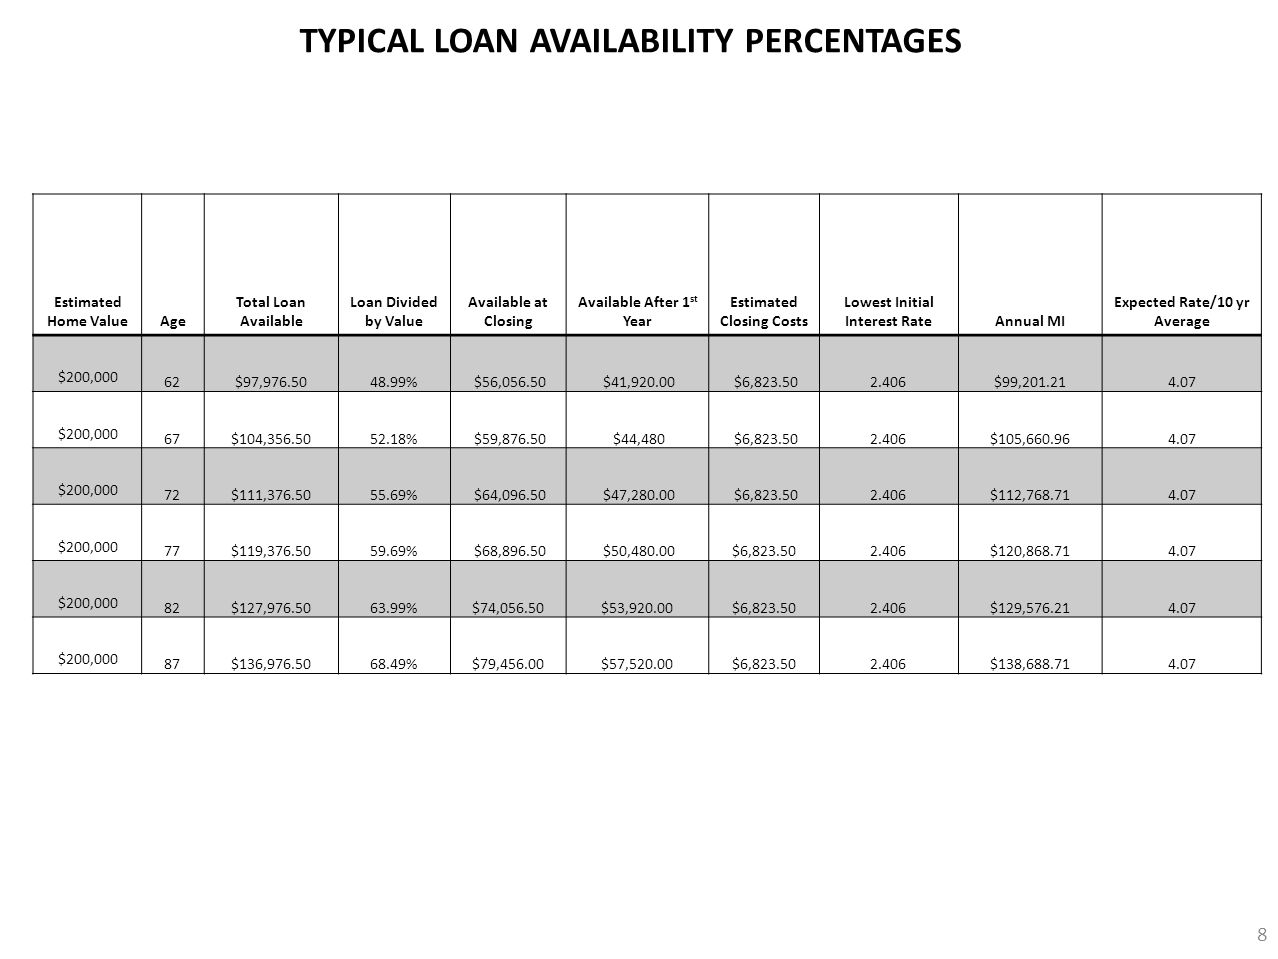 TYPICAL LOAN AVAILABILITY PERCENTAGES